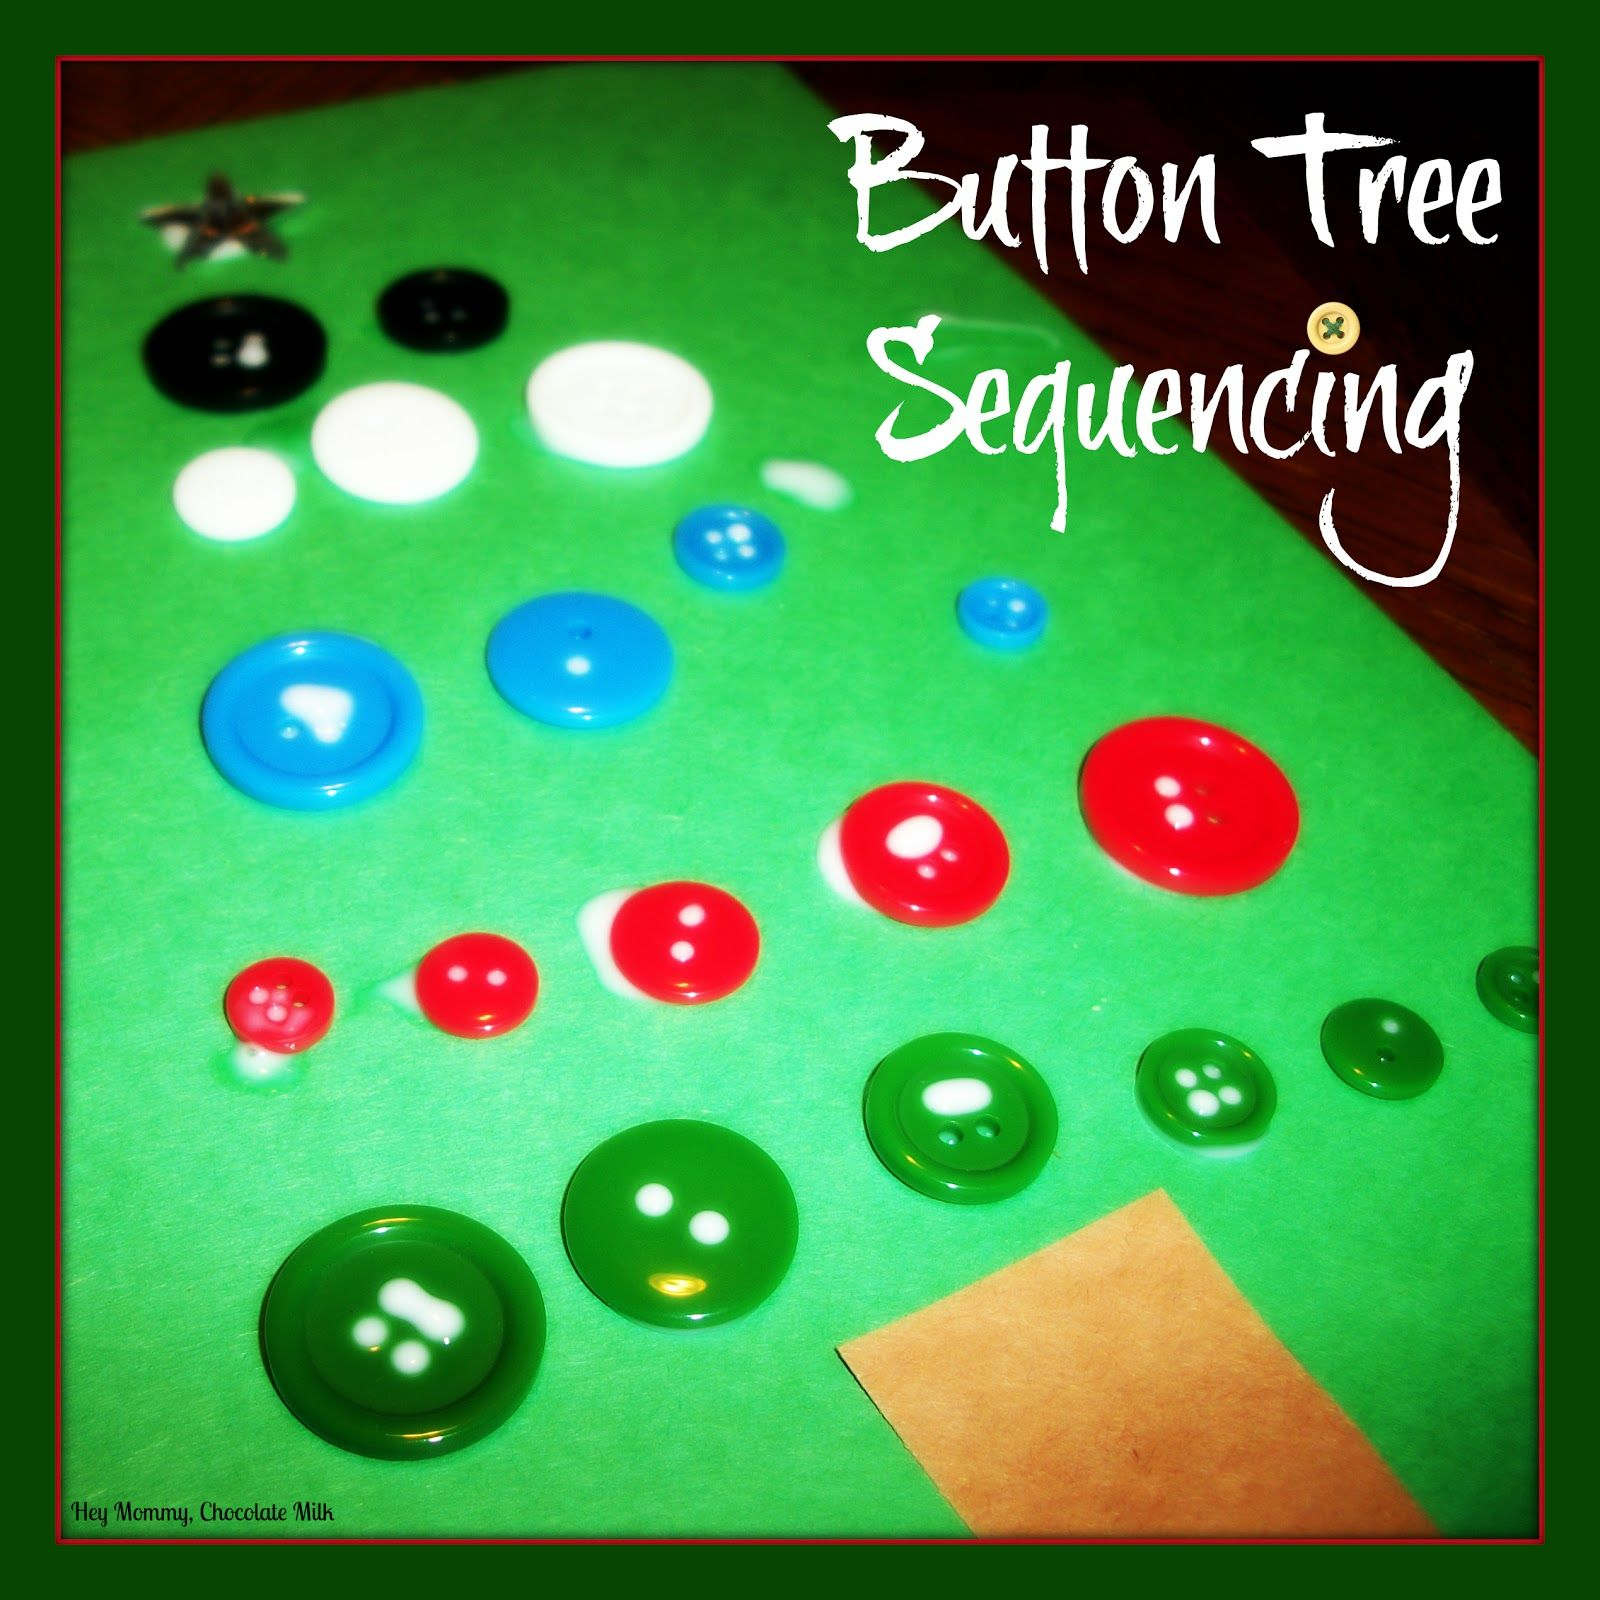 Hey Mommy, Chocolate Milk: Button Tree Sequencing